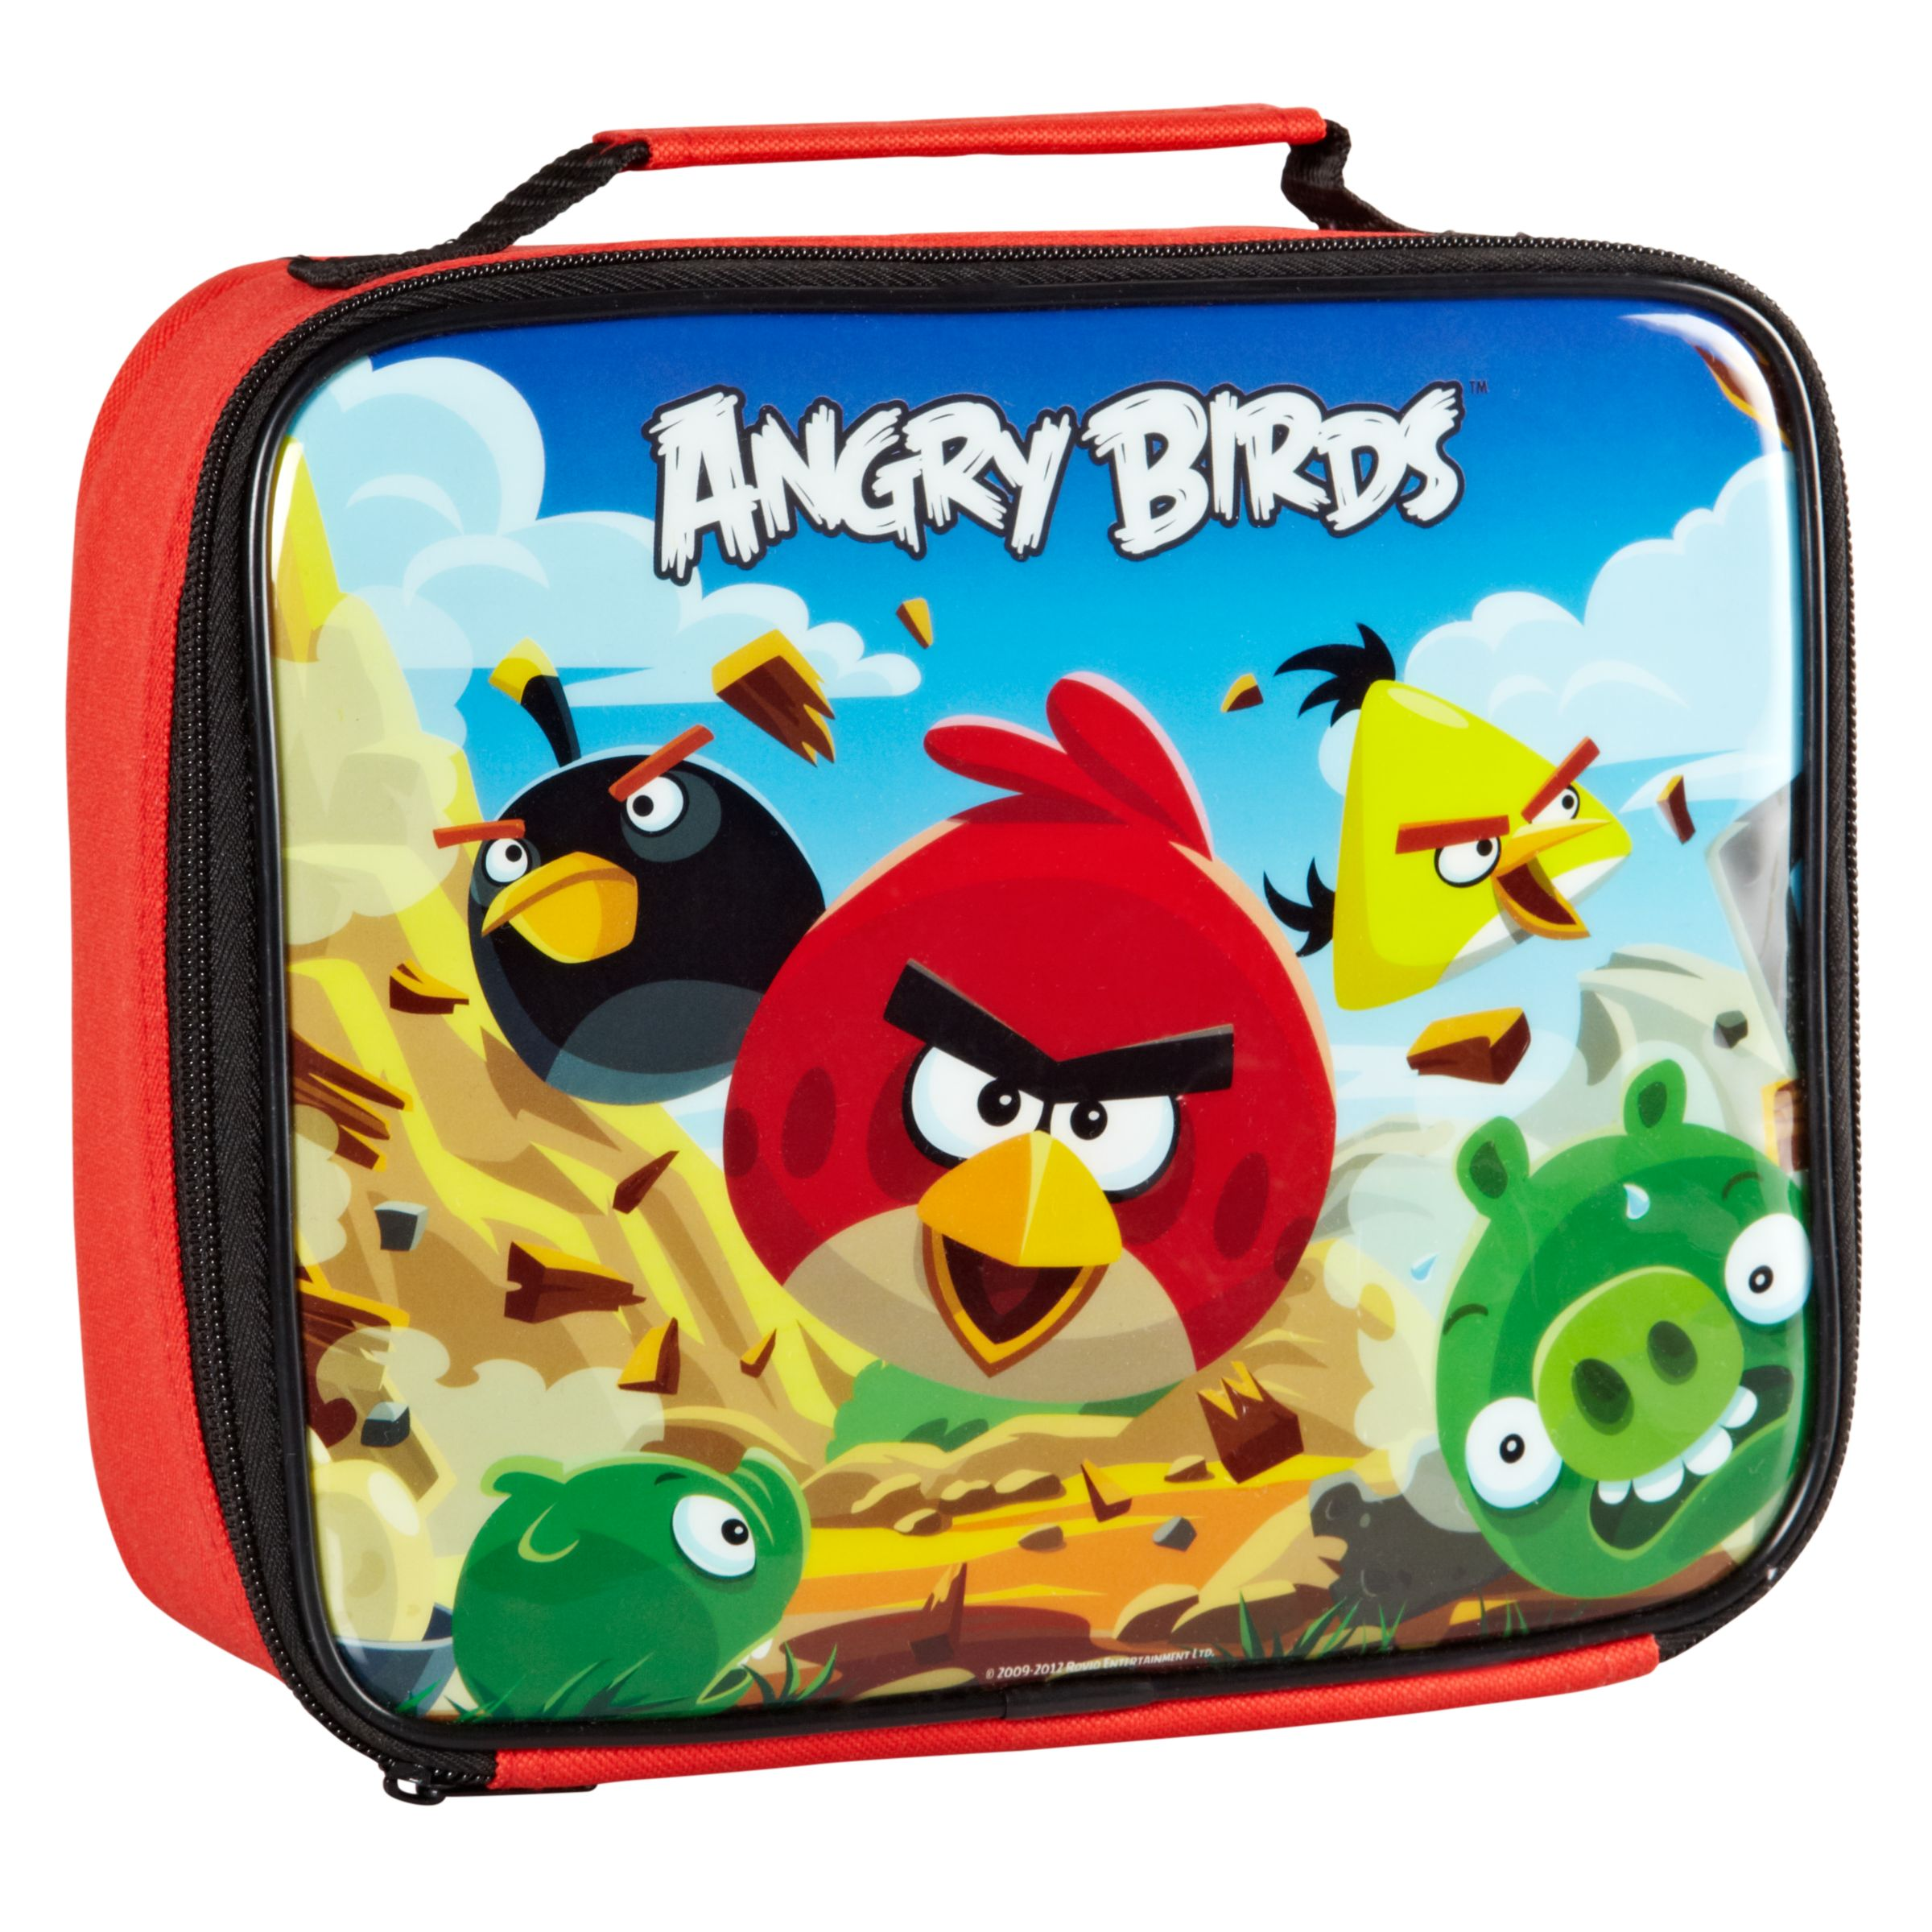 Angry Birds Lunchbag